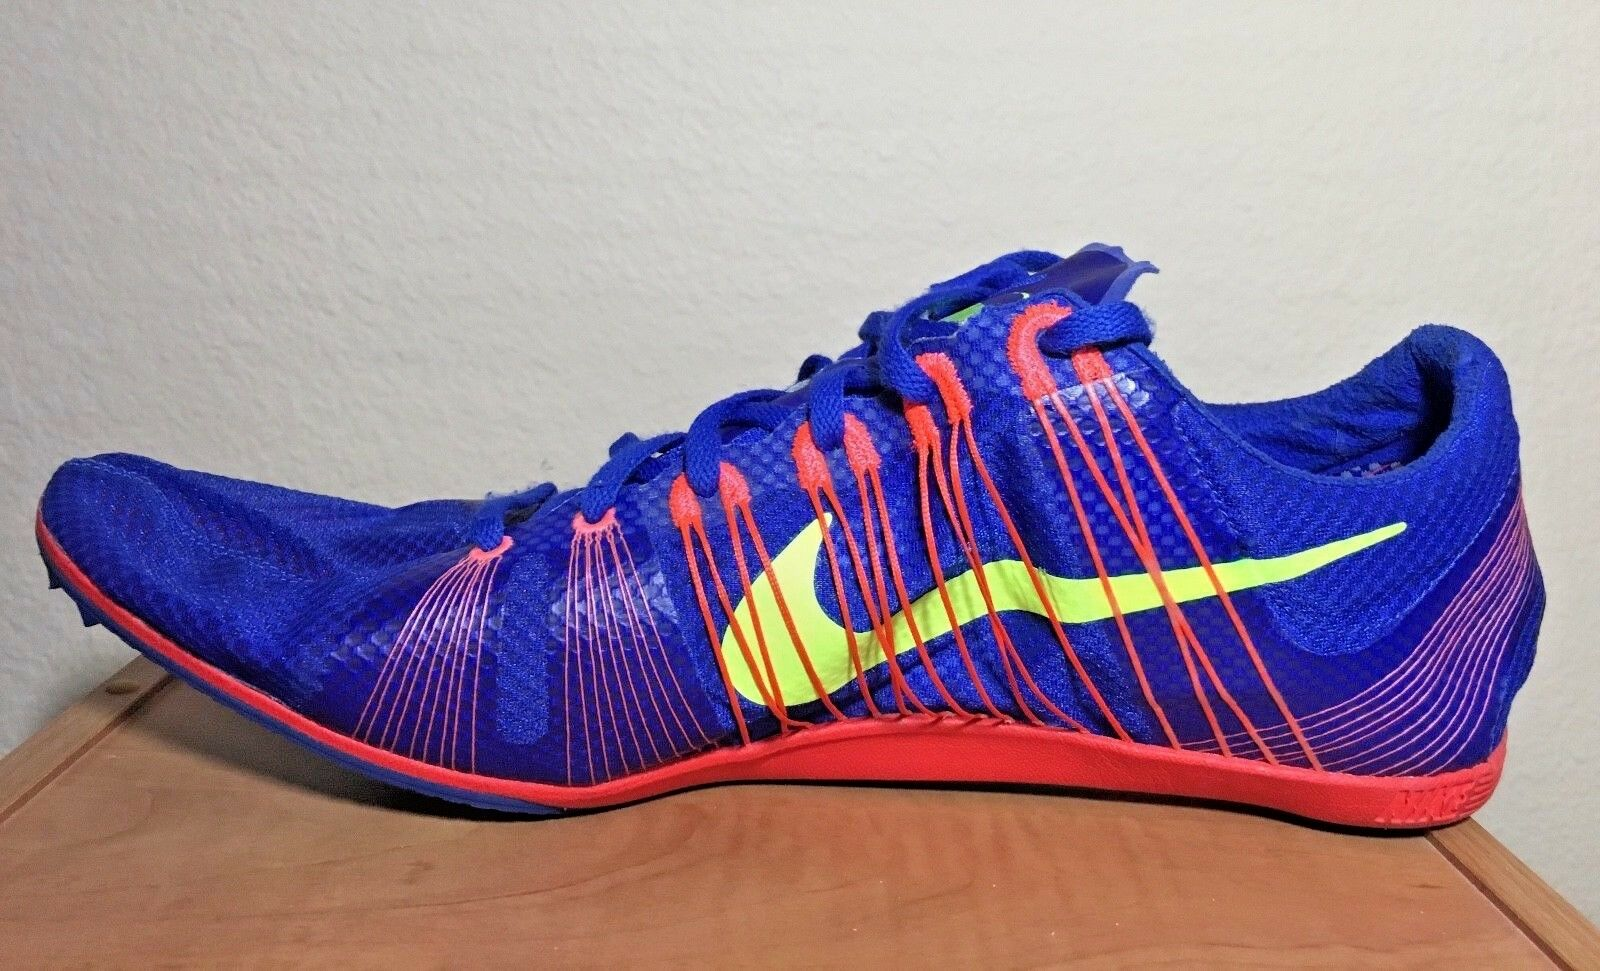 New - Box No Box - - Nike Zoom Victory 2 Track [555365-476] Game Royal Volt Size 15 802425